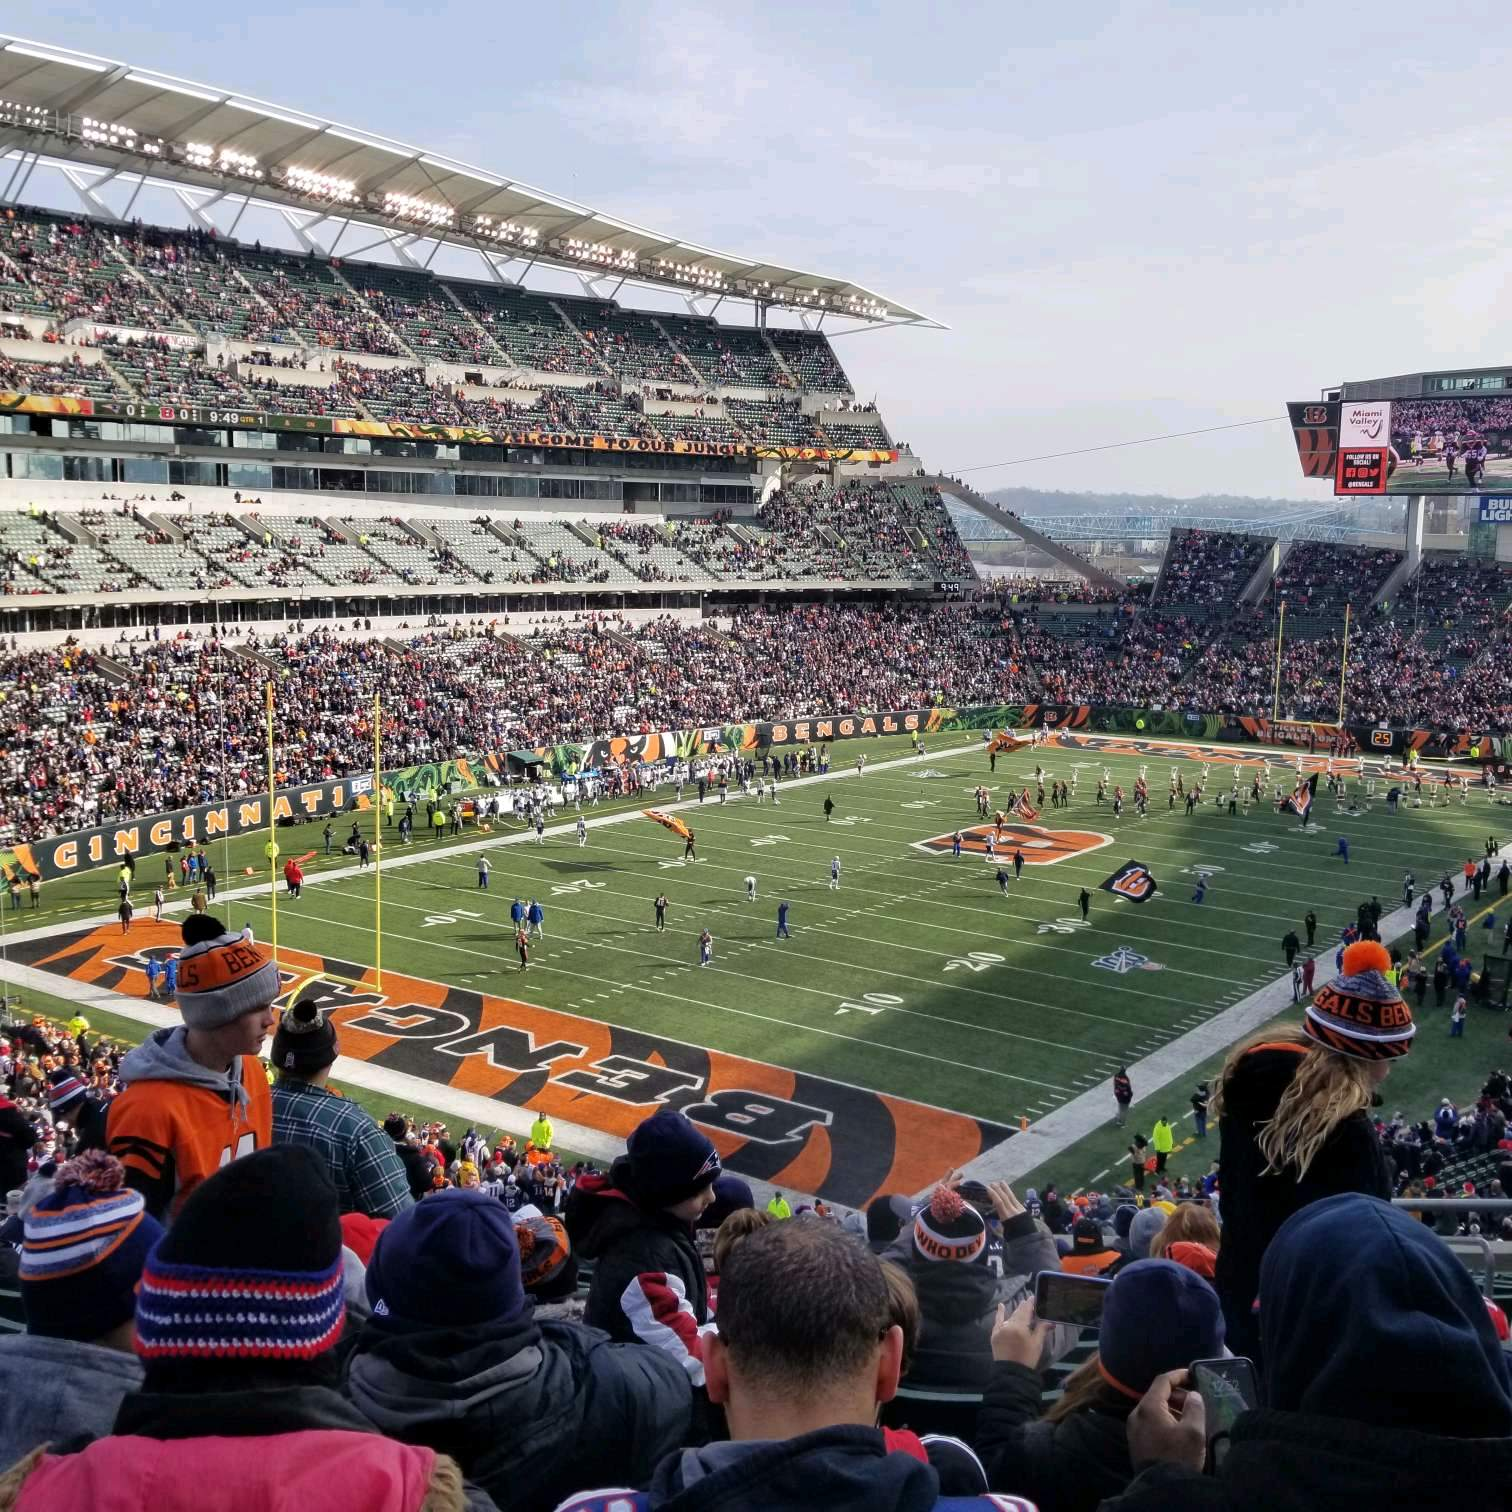 Paul Brown Stadium Section 220 Row 17 Seat 5